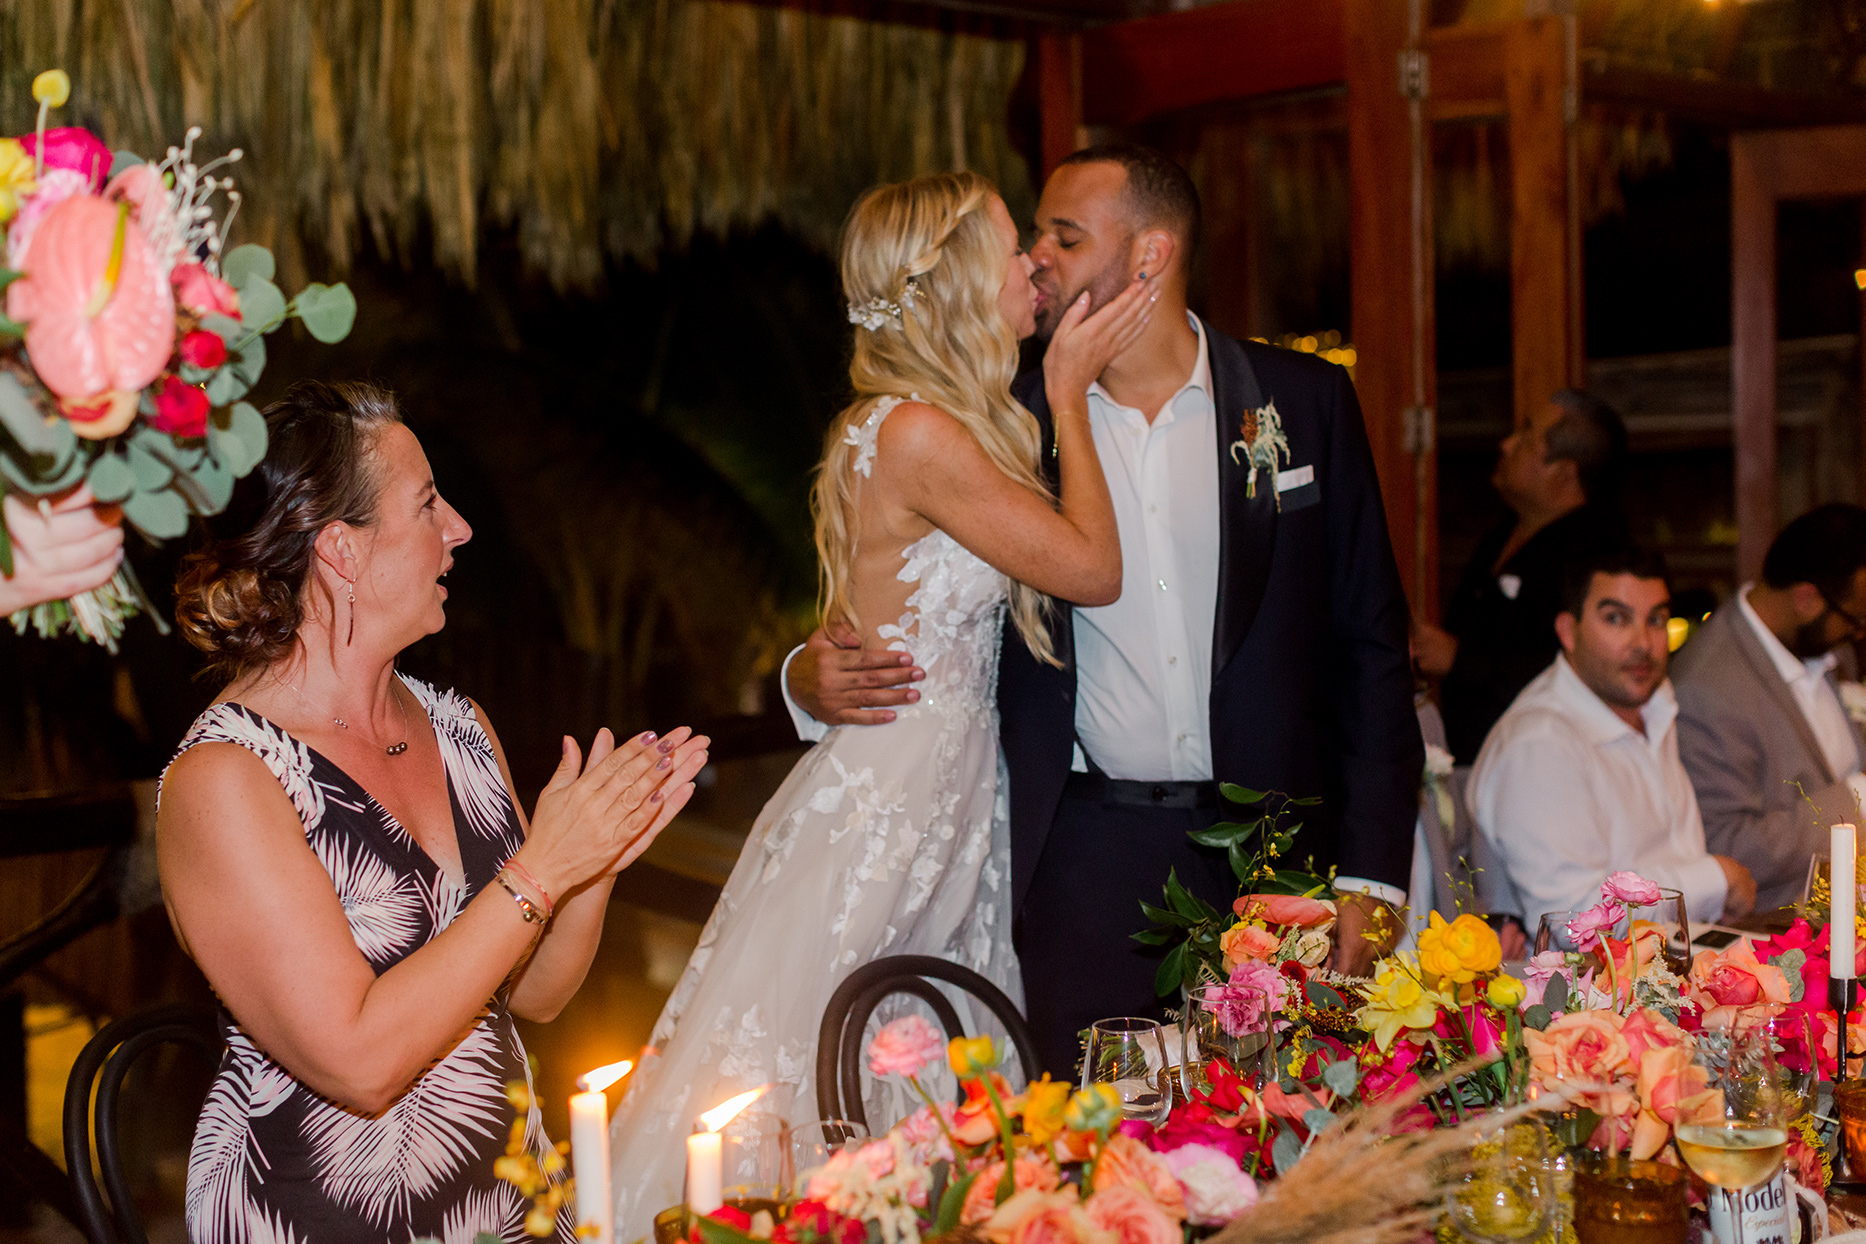 wedding couple kissing during reception in front of colorful table